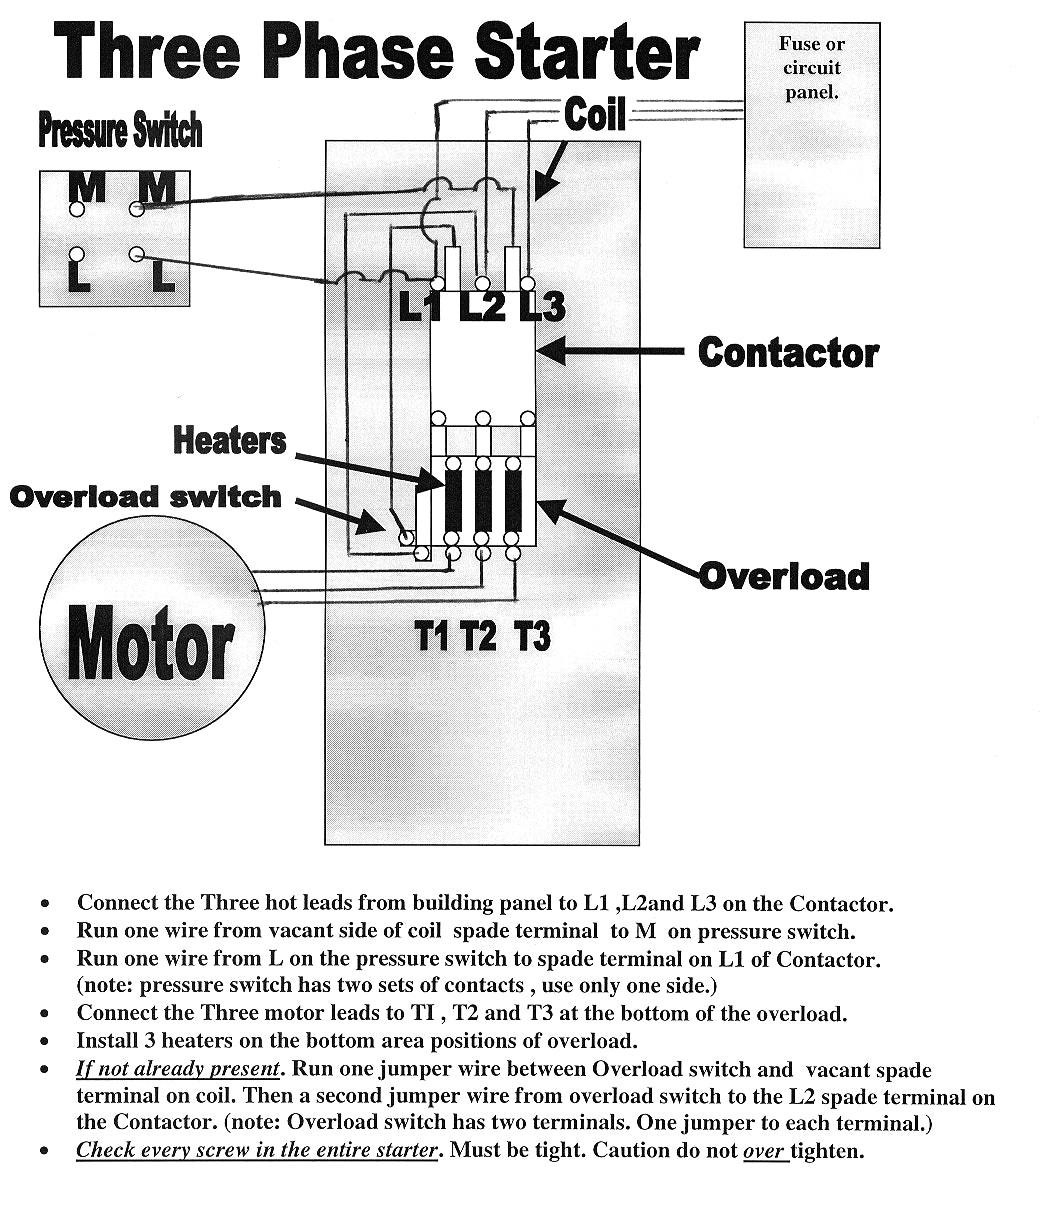 Ge Motor Starter Wiring Diagram | Free Wiring Diagram on hand off auto wiring 120v, air compressor pressure switch diagram, hand off auto ladder diagram,